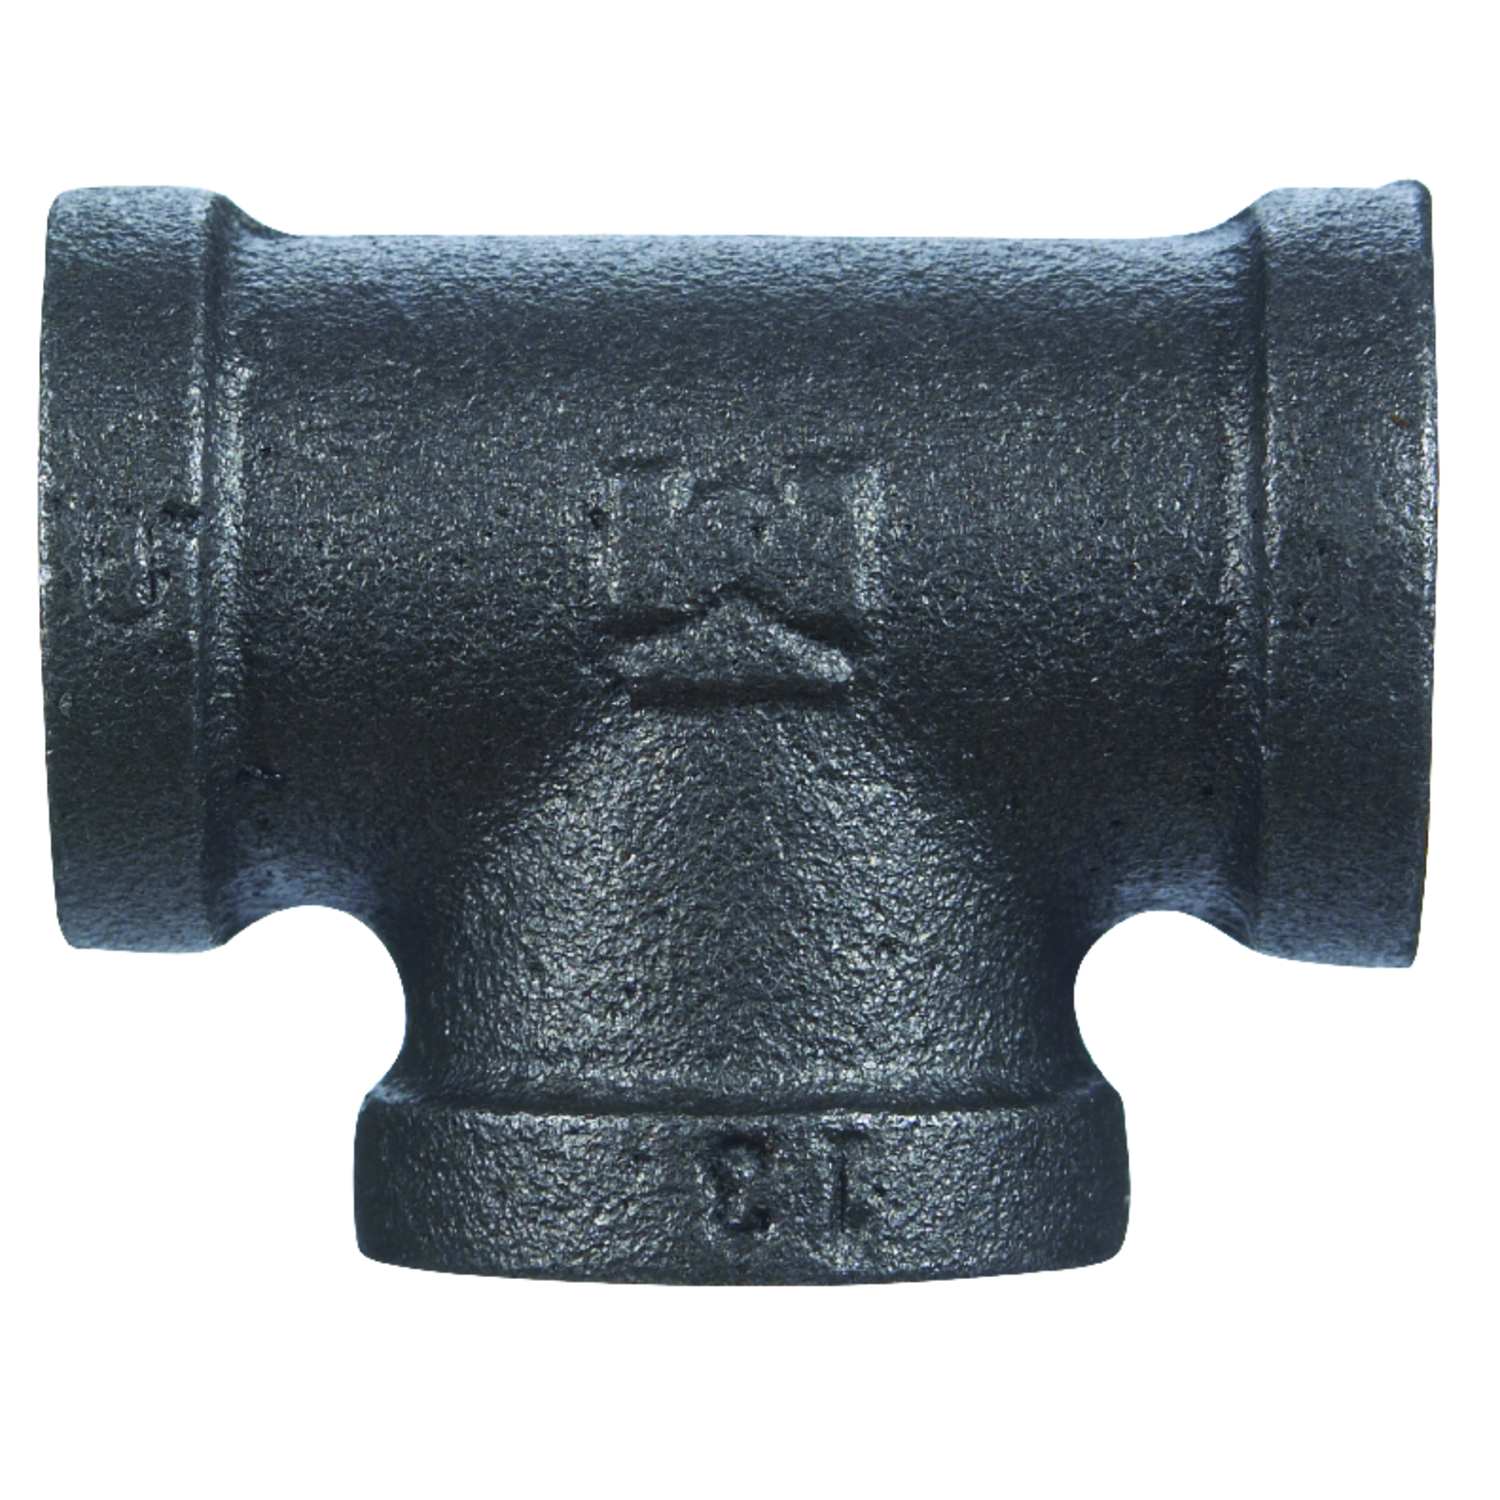 B & K  1/4 in. FPT   x 1/4 in. Dia. FPT  Black  Malleable Iron  Tee